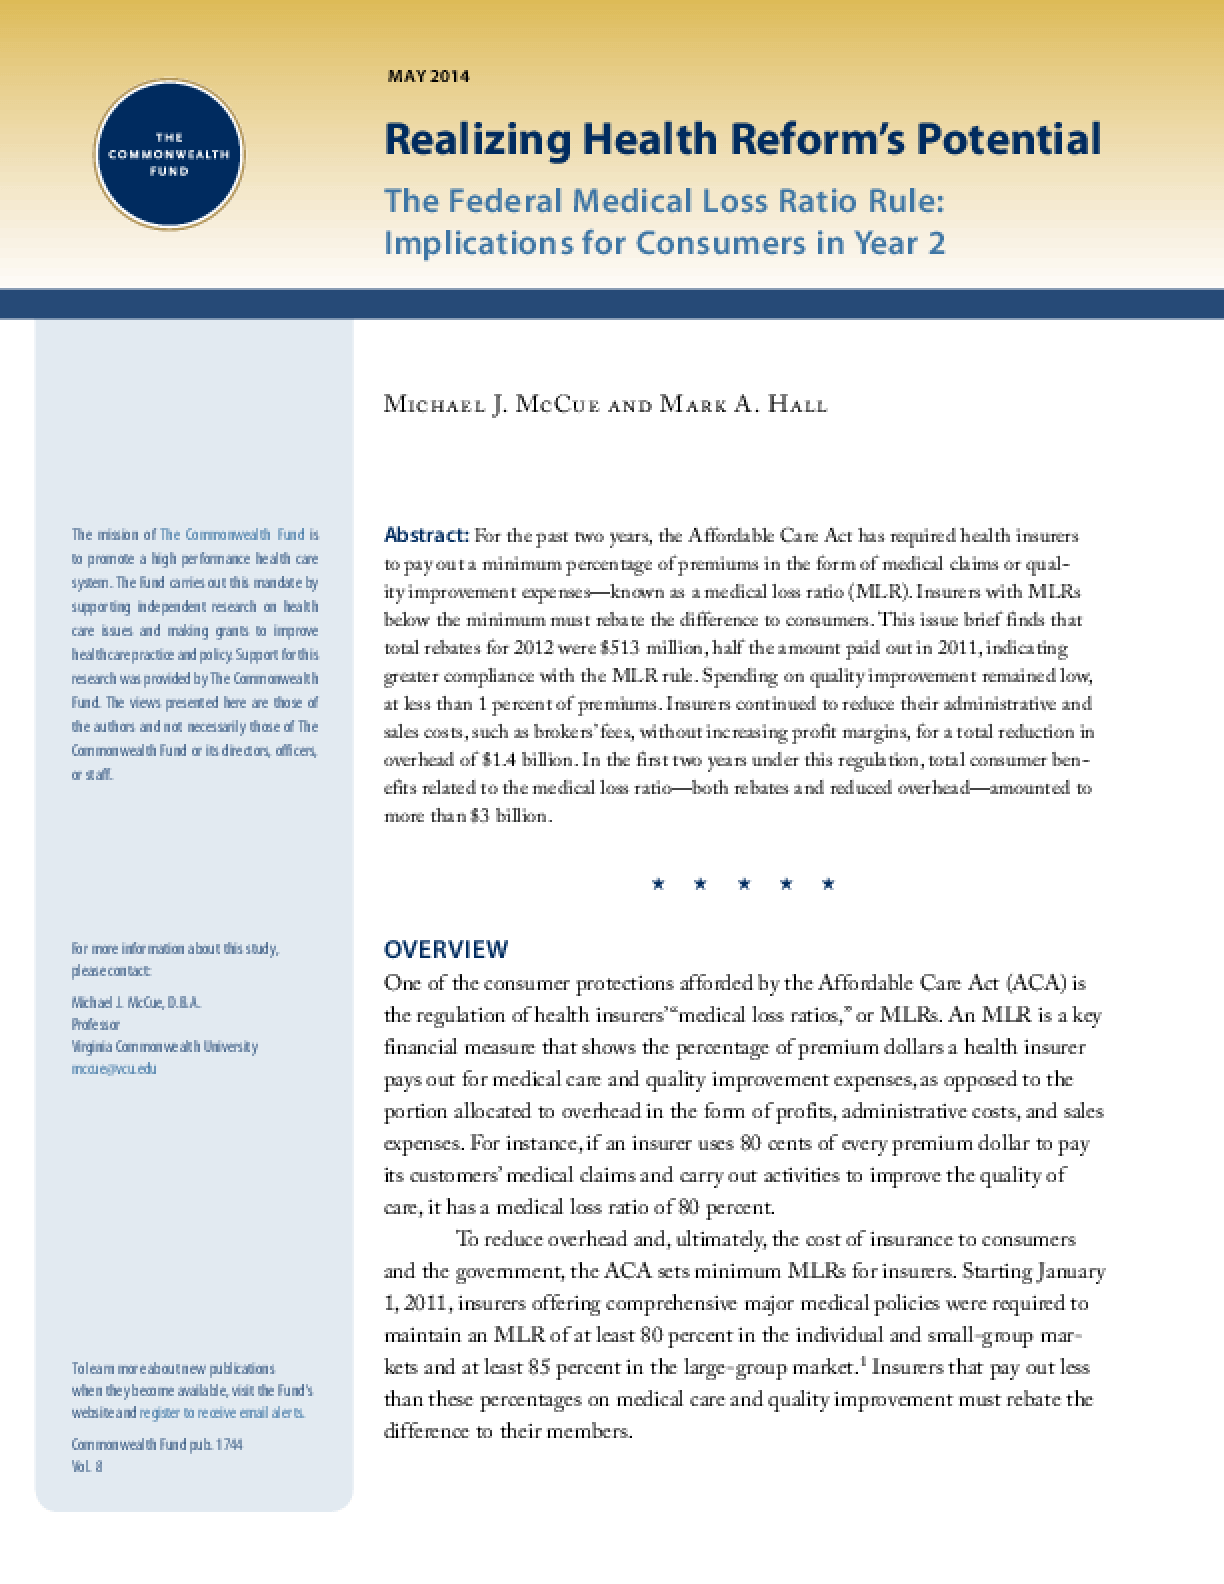 The Federal Medical Loss Ratio Rule: Implications for Consumers in Year Two